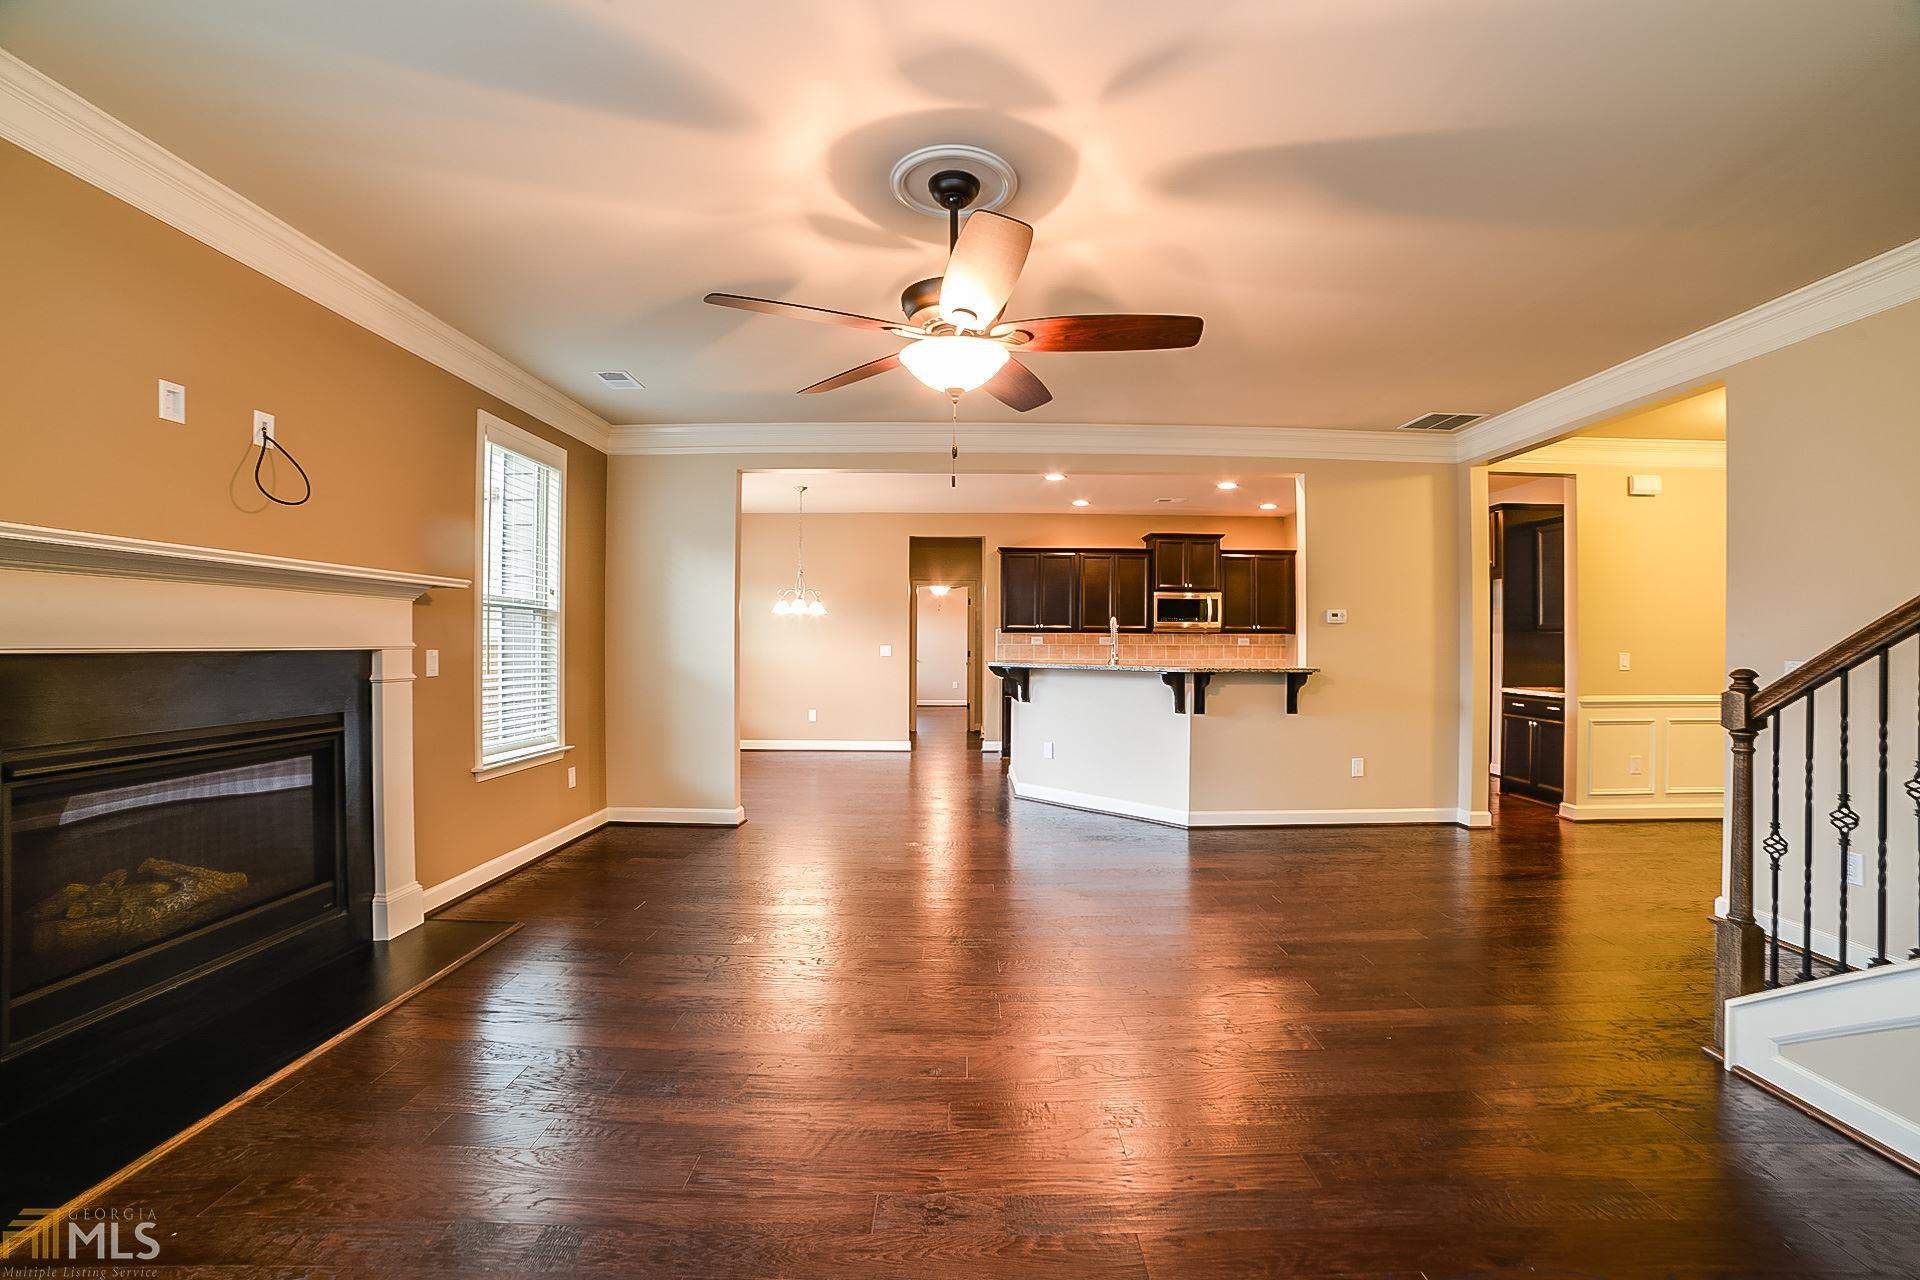 hardwood flooring services ct of 820 tramore ct acworth 30102 better homes and gardens real inside 820 tramore ct acworth ga 30102